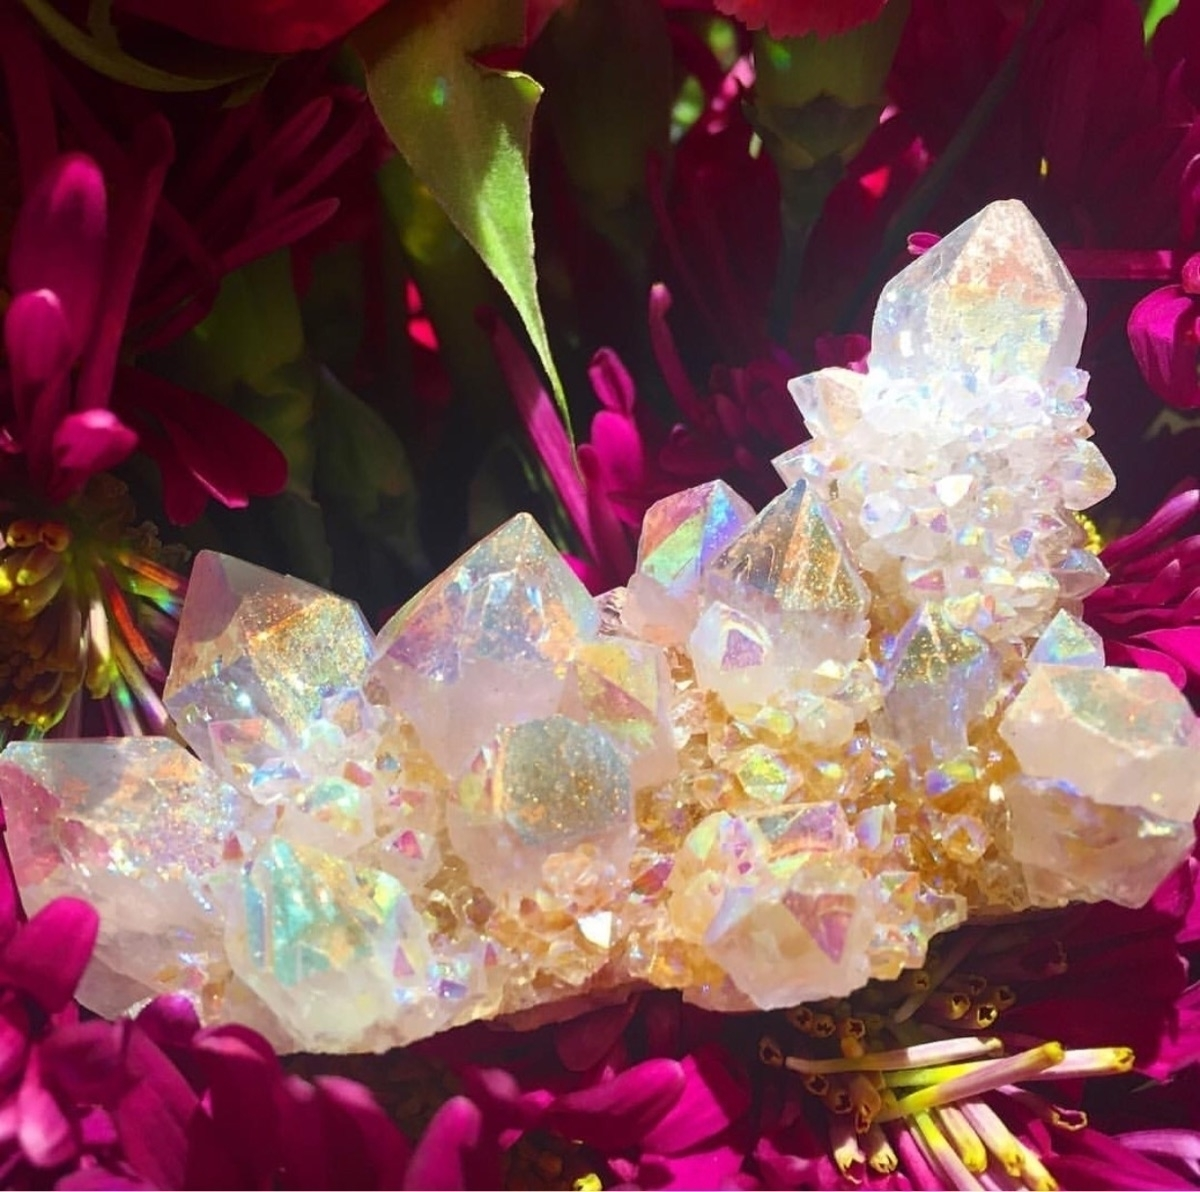 angel aura spirit quartz care w - prismsouls | ello